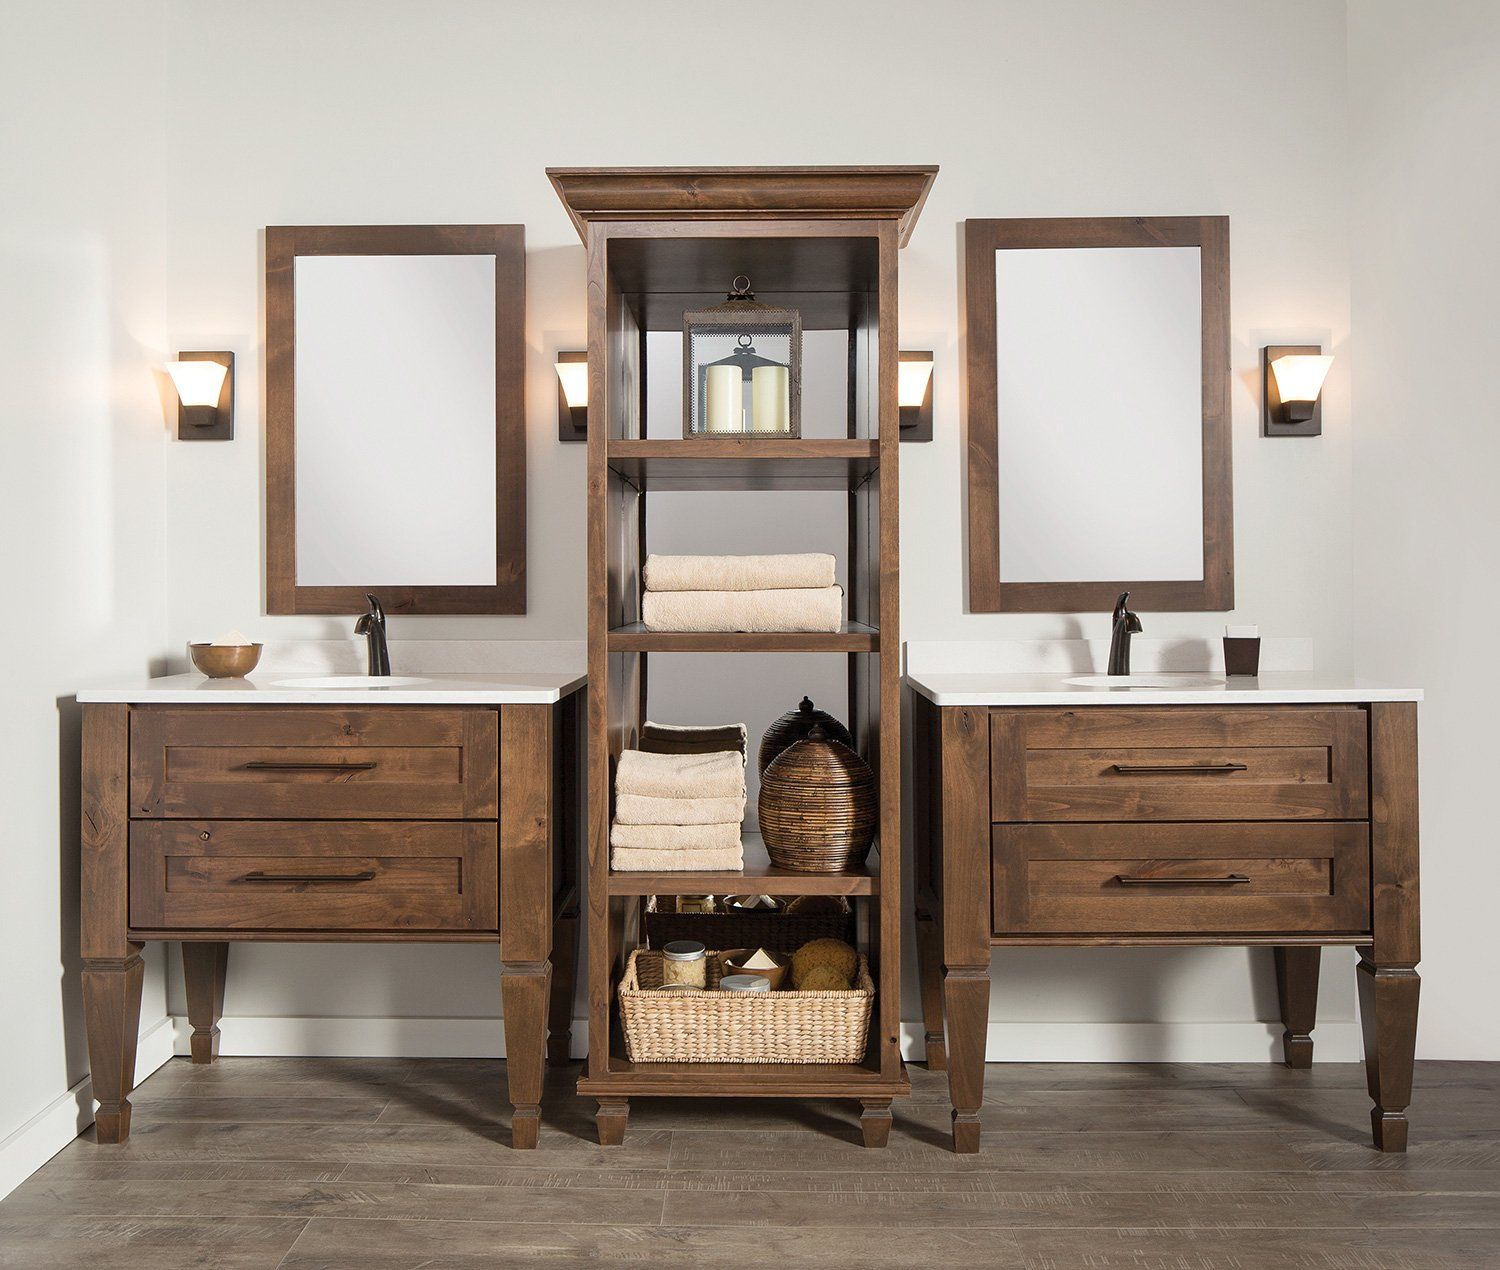 Custom Bathroom Vanities Omaha campbell's kitchen cabinets inc. | custom design lincoln ne